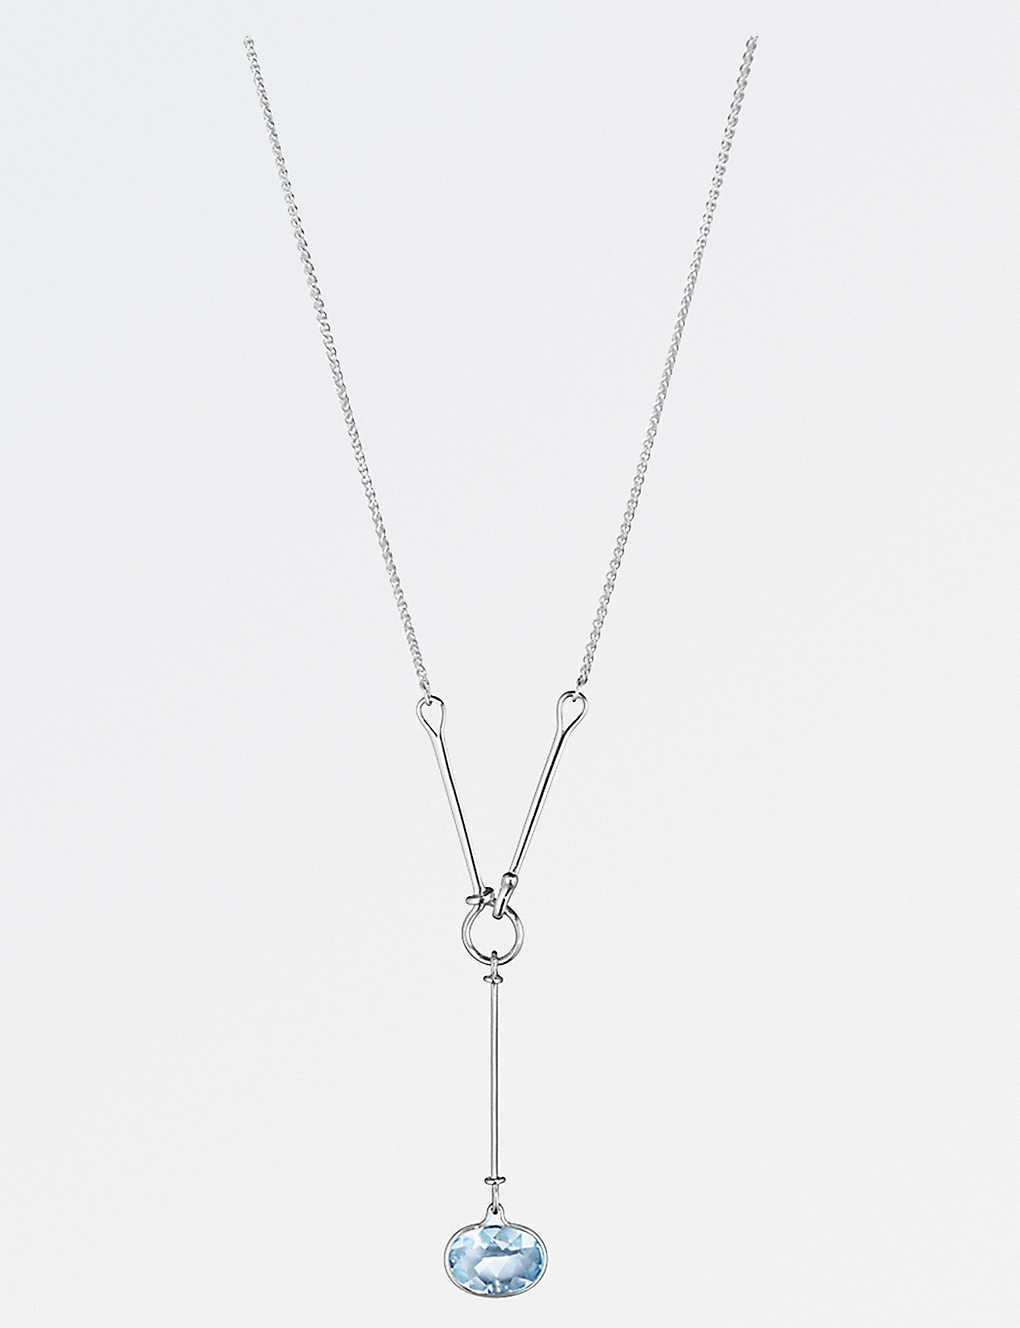 40878bfd1 GEORG JENSEN - Savannah sterling silver and blue topaz necklace ...